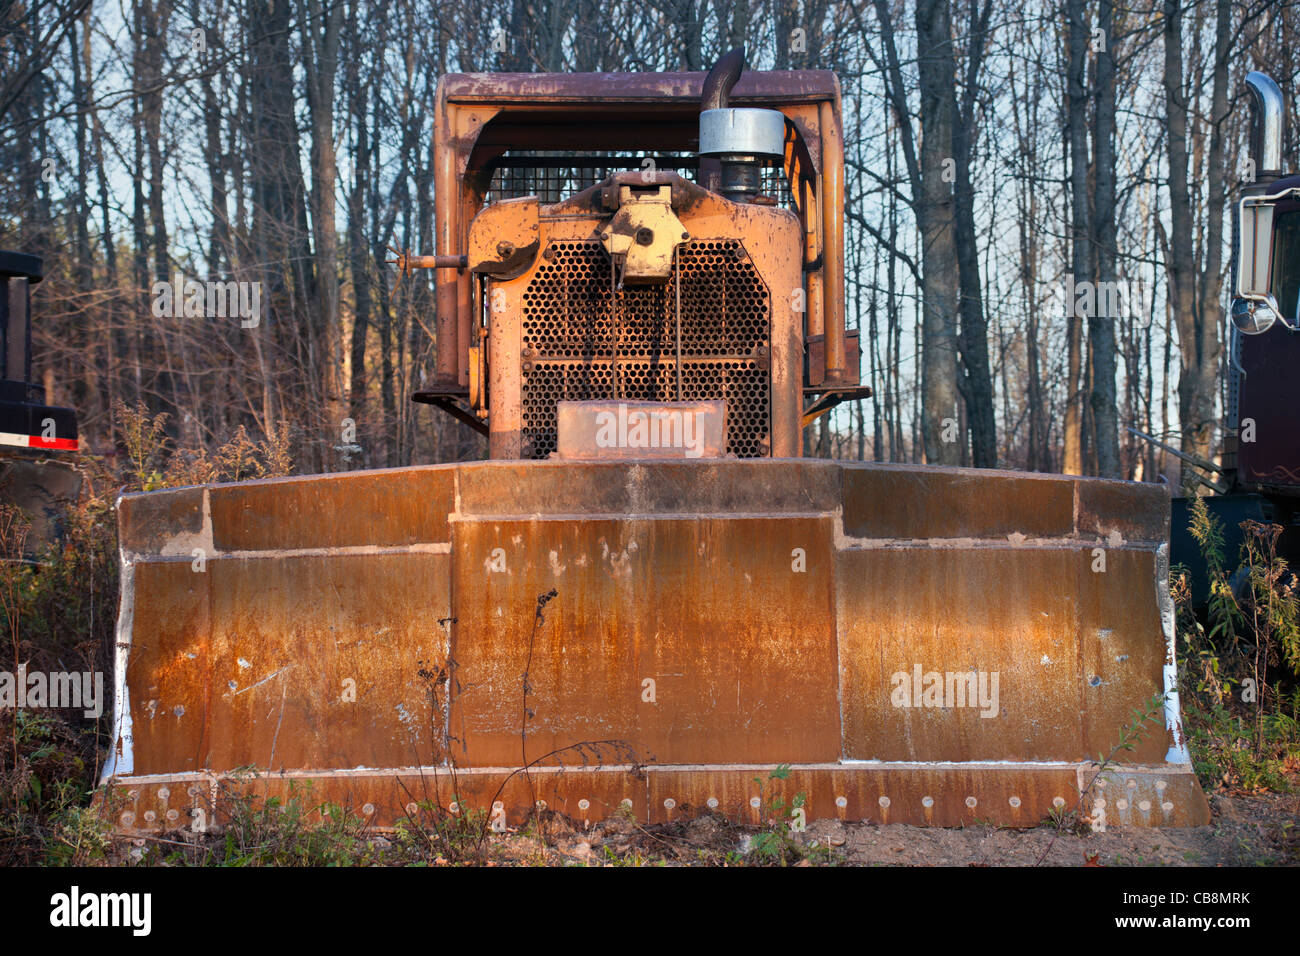 Old bulldozer - Stock Image